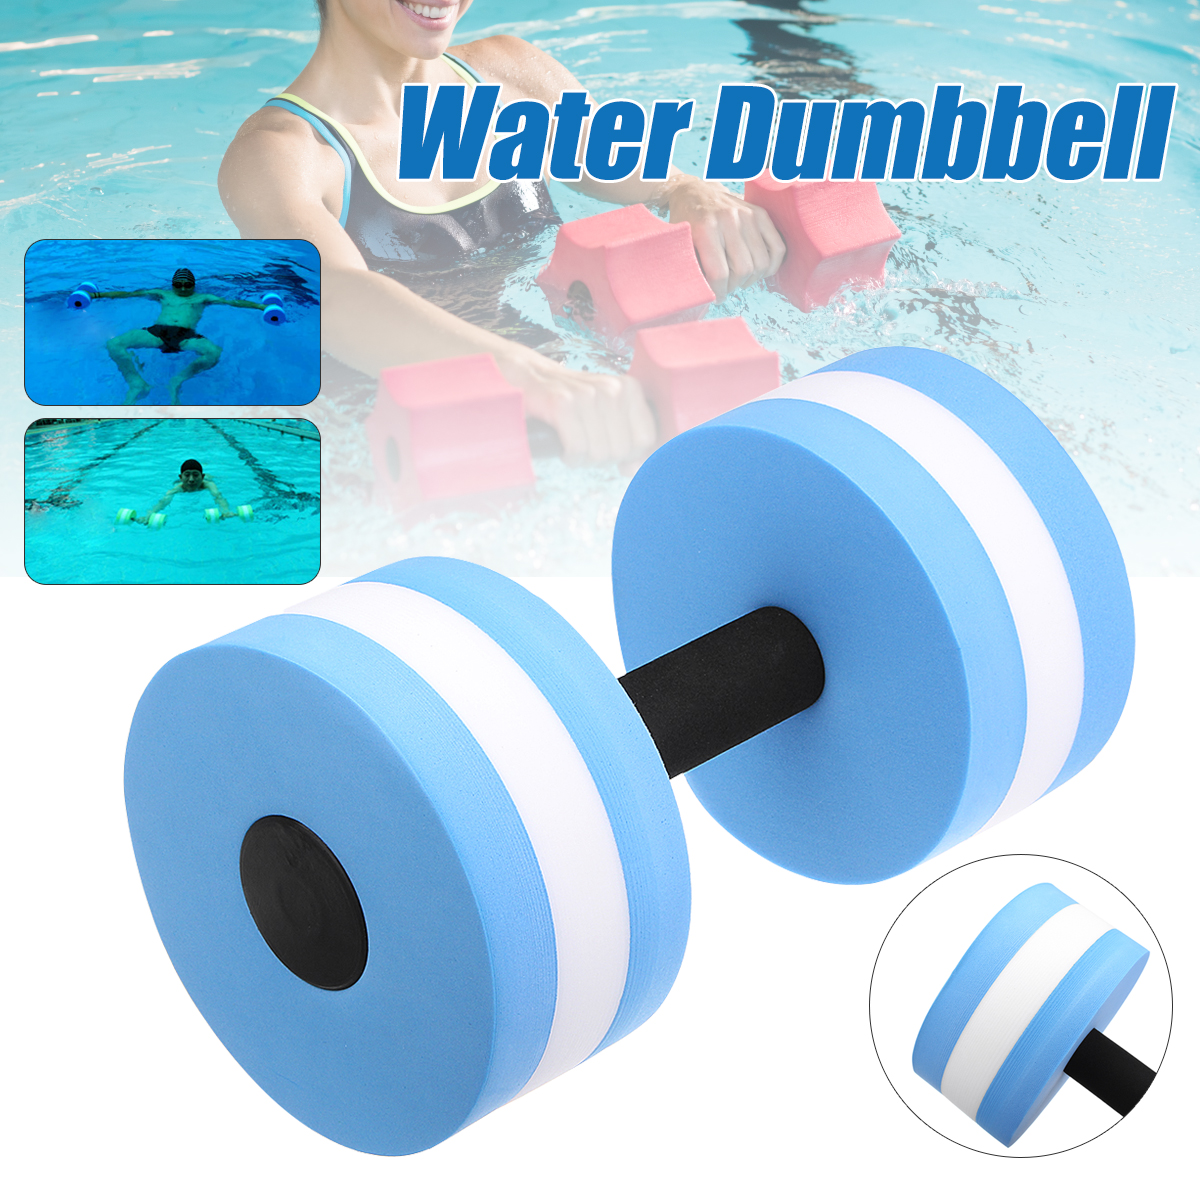 Swimming Pool Accessories Water Aerobics Dumbbell EVA Aquatic Barbell Fitness Barbells Gym Exercise Training Fitness Equipment